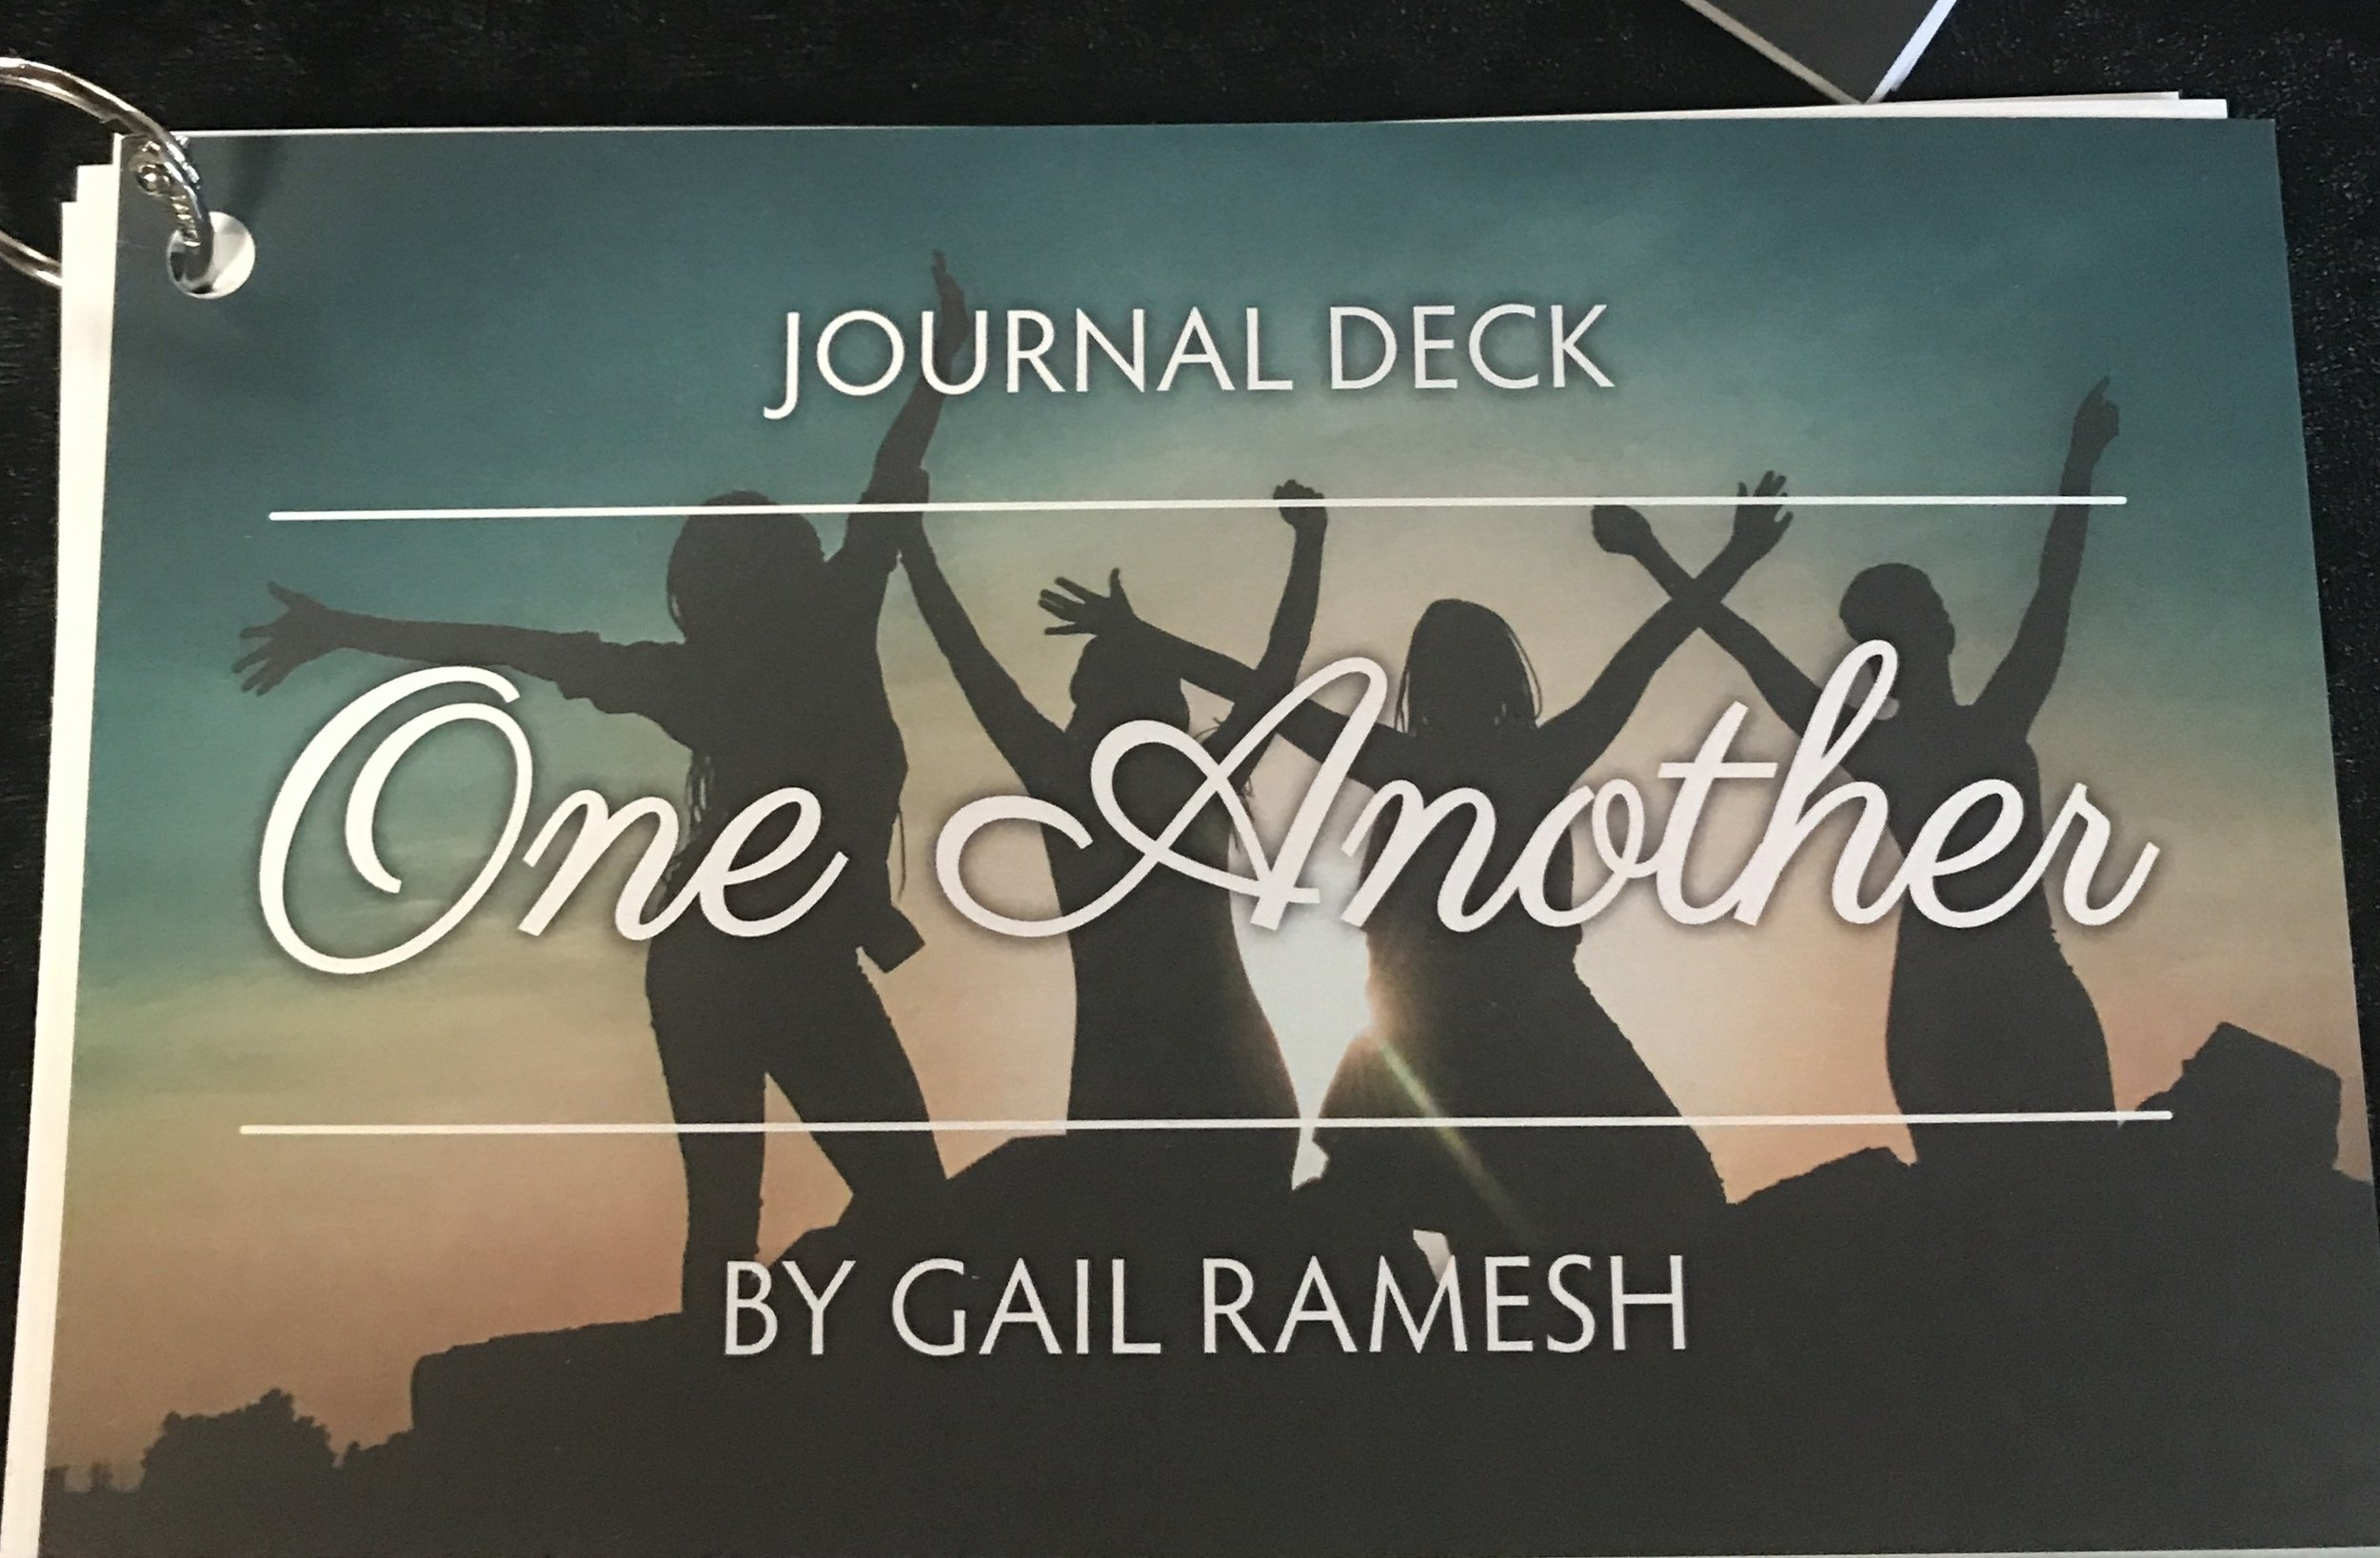 One Another's Journal Deck